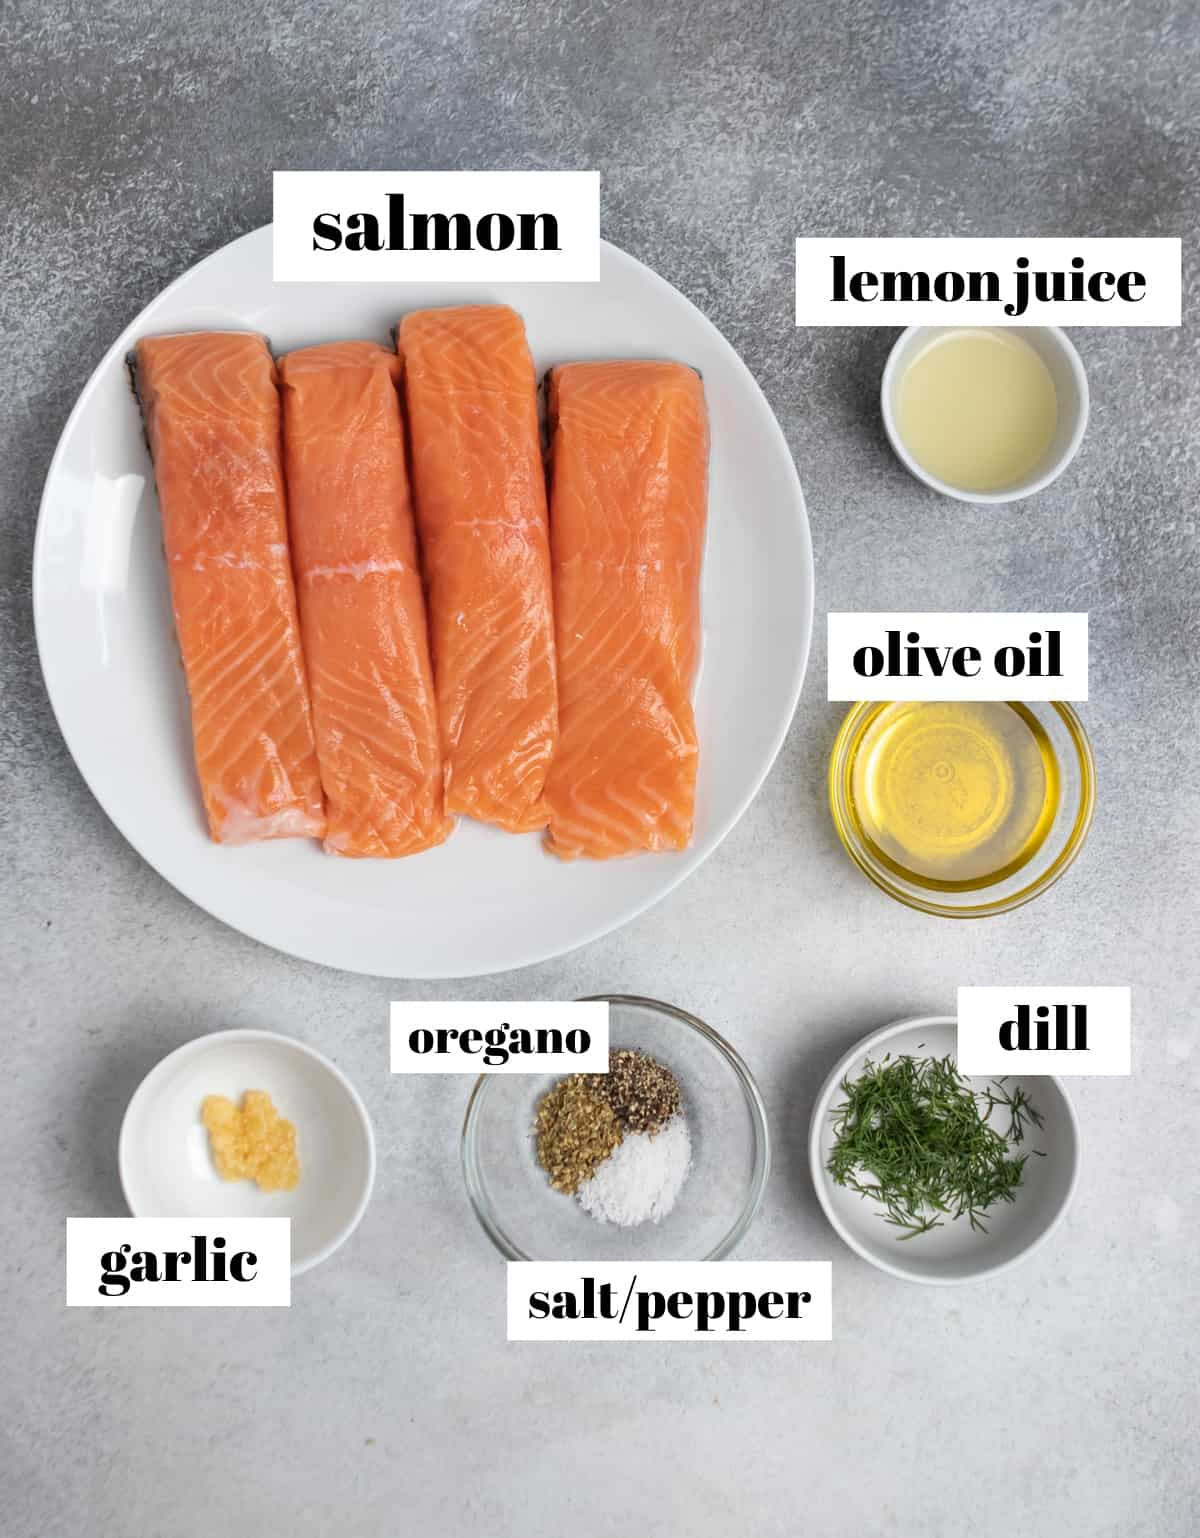 Salmon, lemon juice, dill, spices and other ingredients labeled on counter.